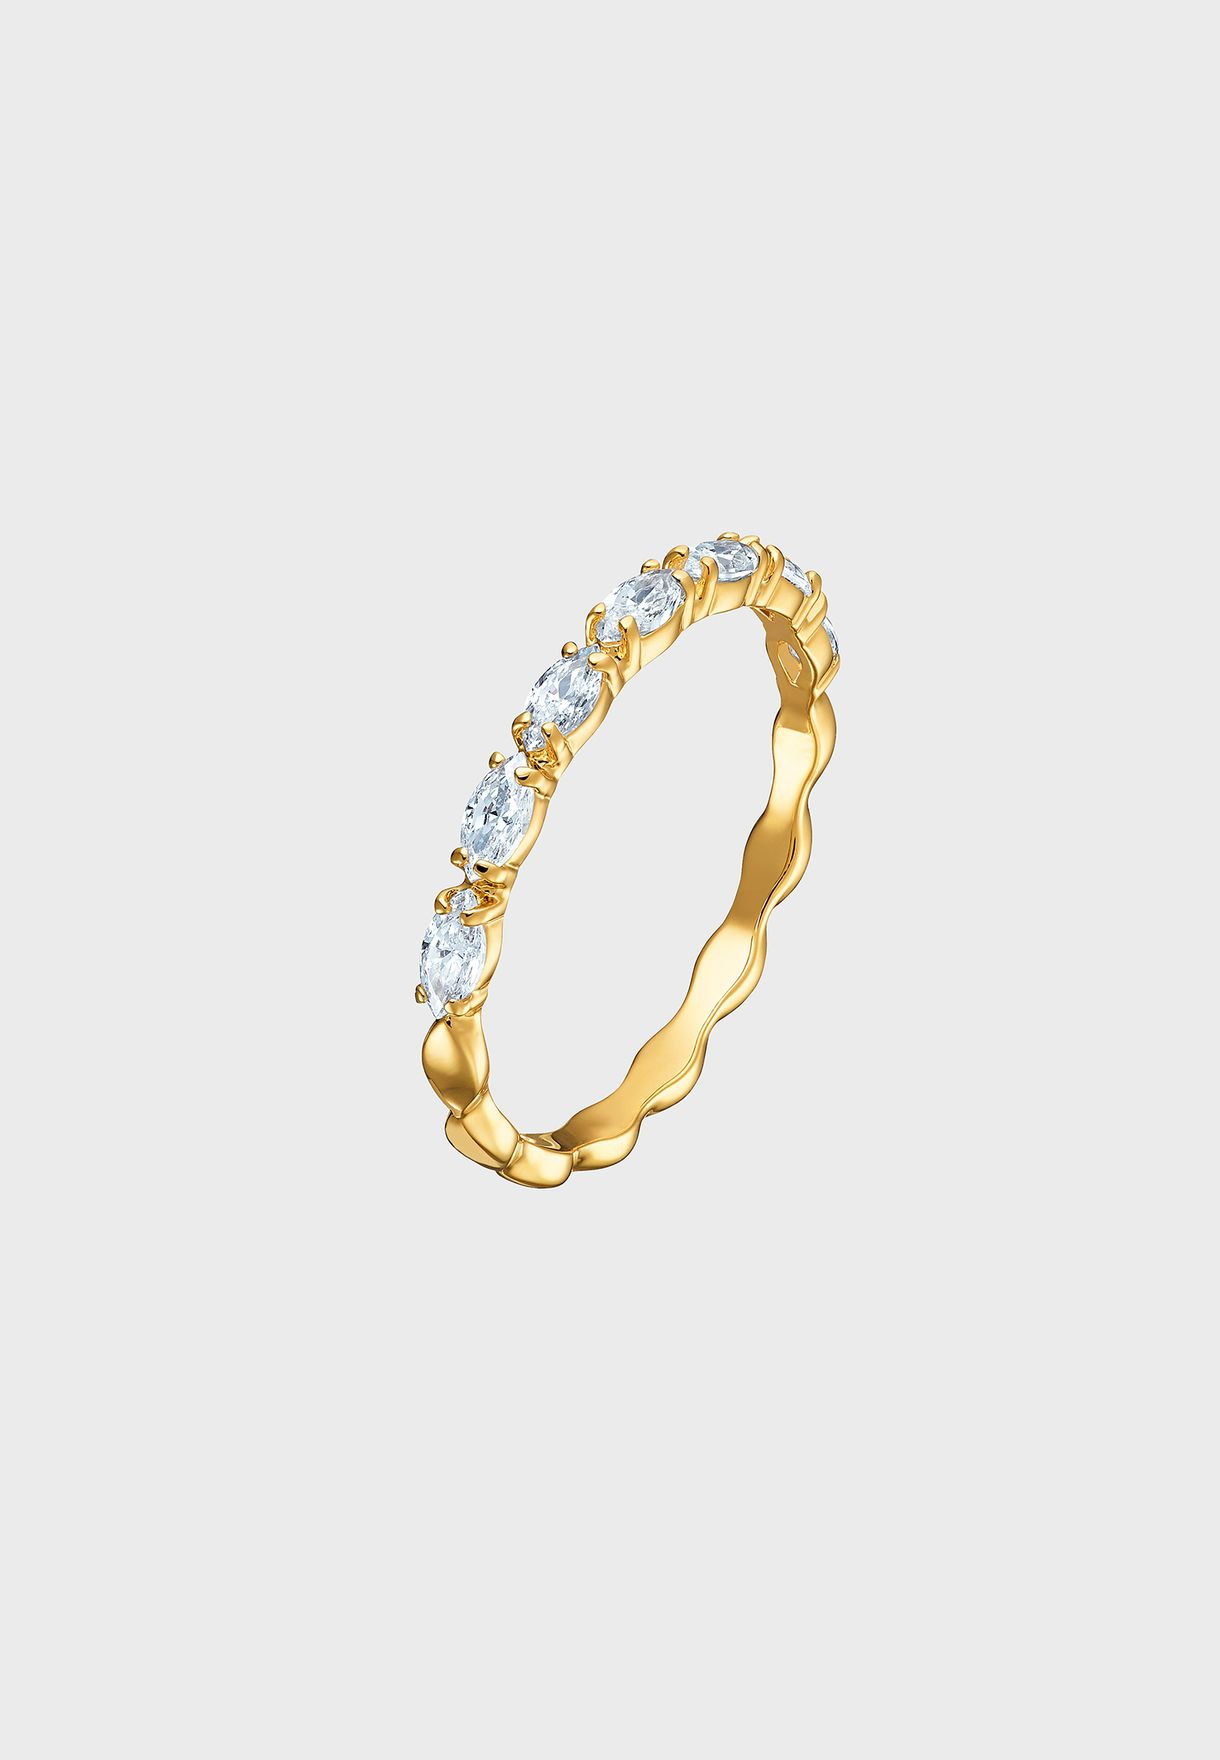 Vittore Marquise Ring